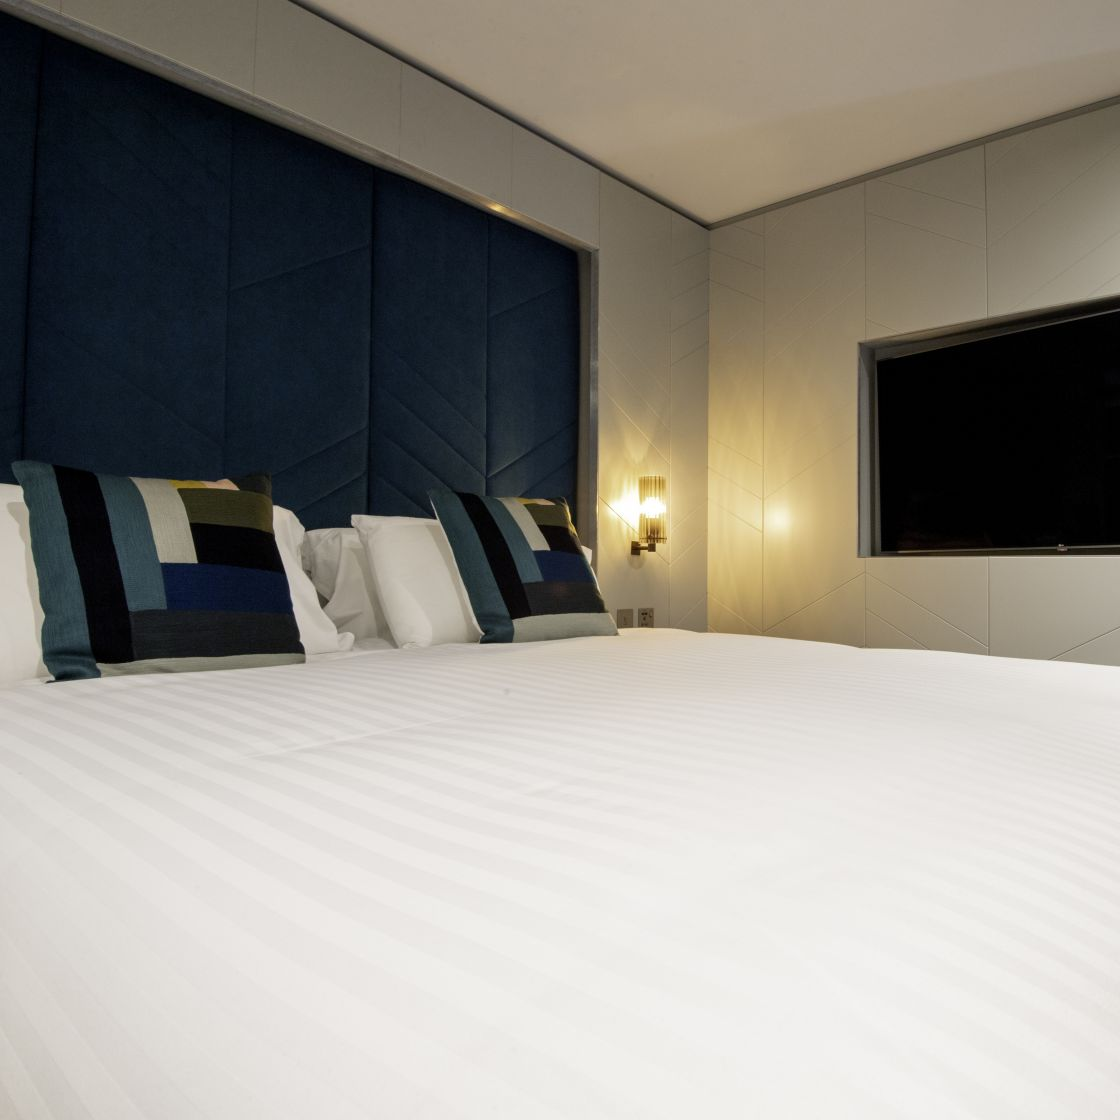 Smart Studio Student Apartment in Newcastle. King Size Bed and Flat Screen TV. IconInc @ Roomzzz